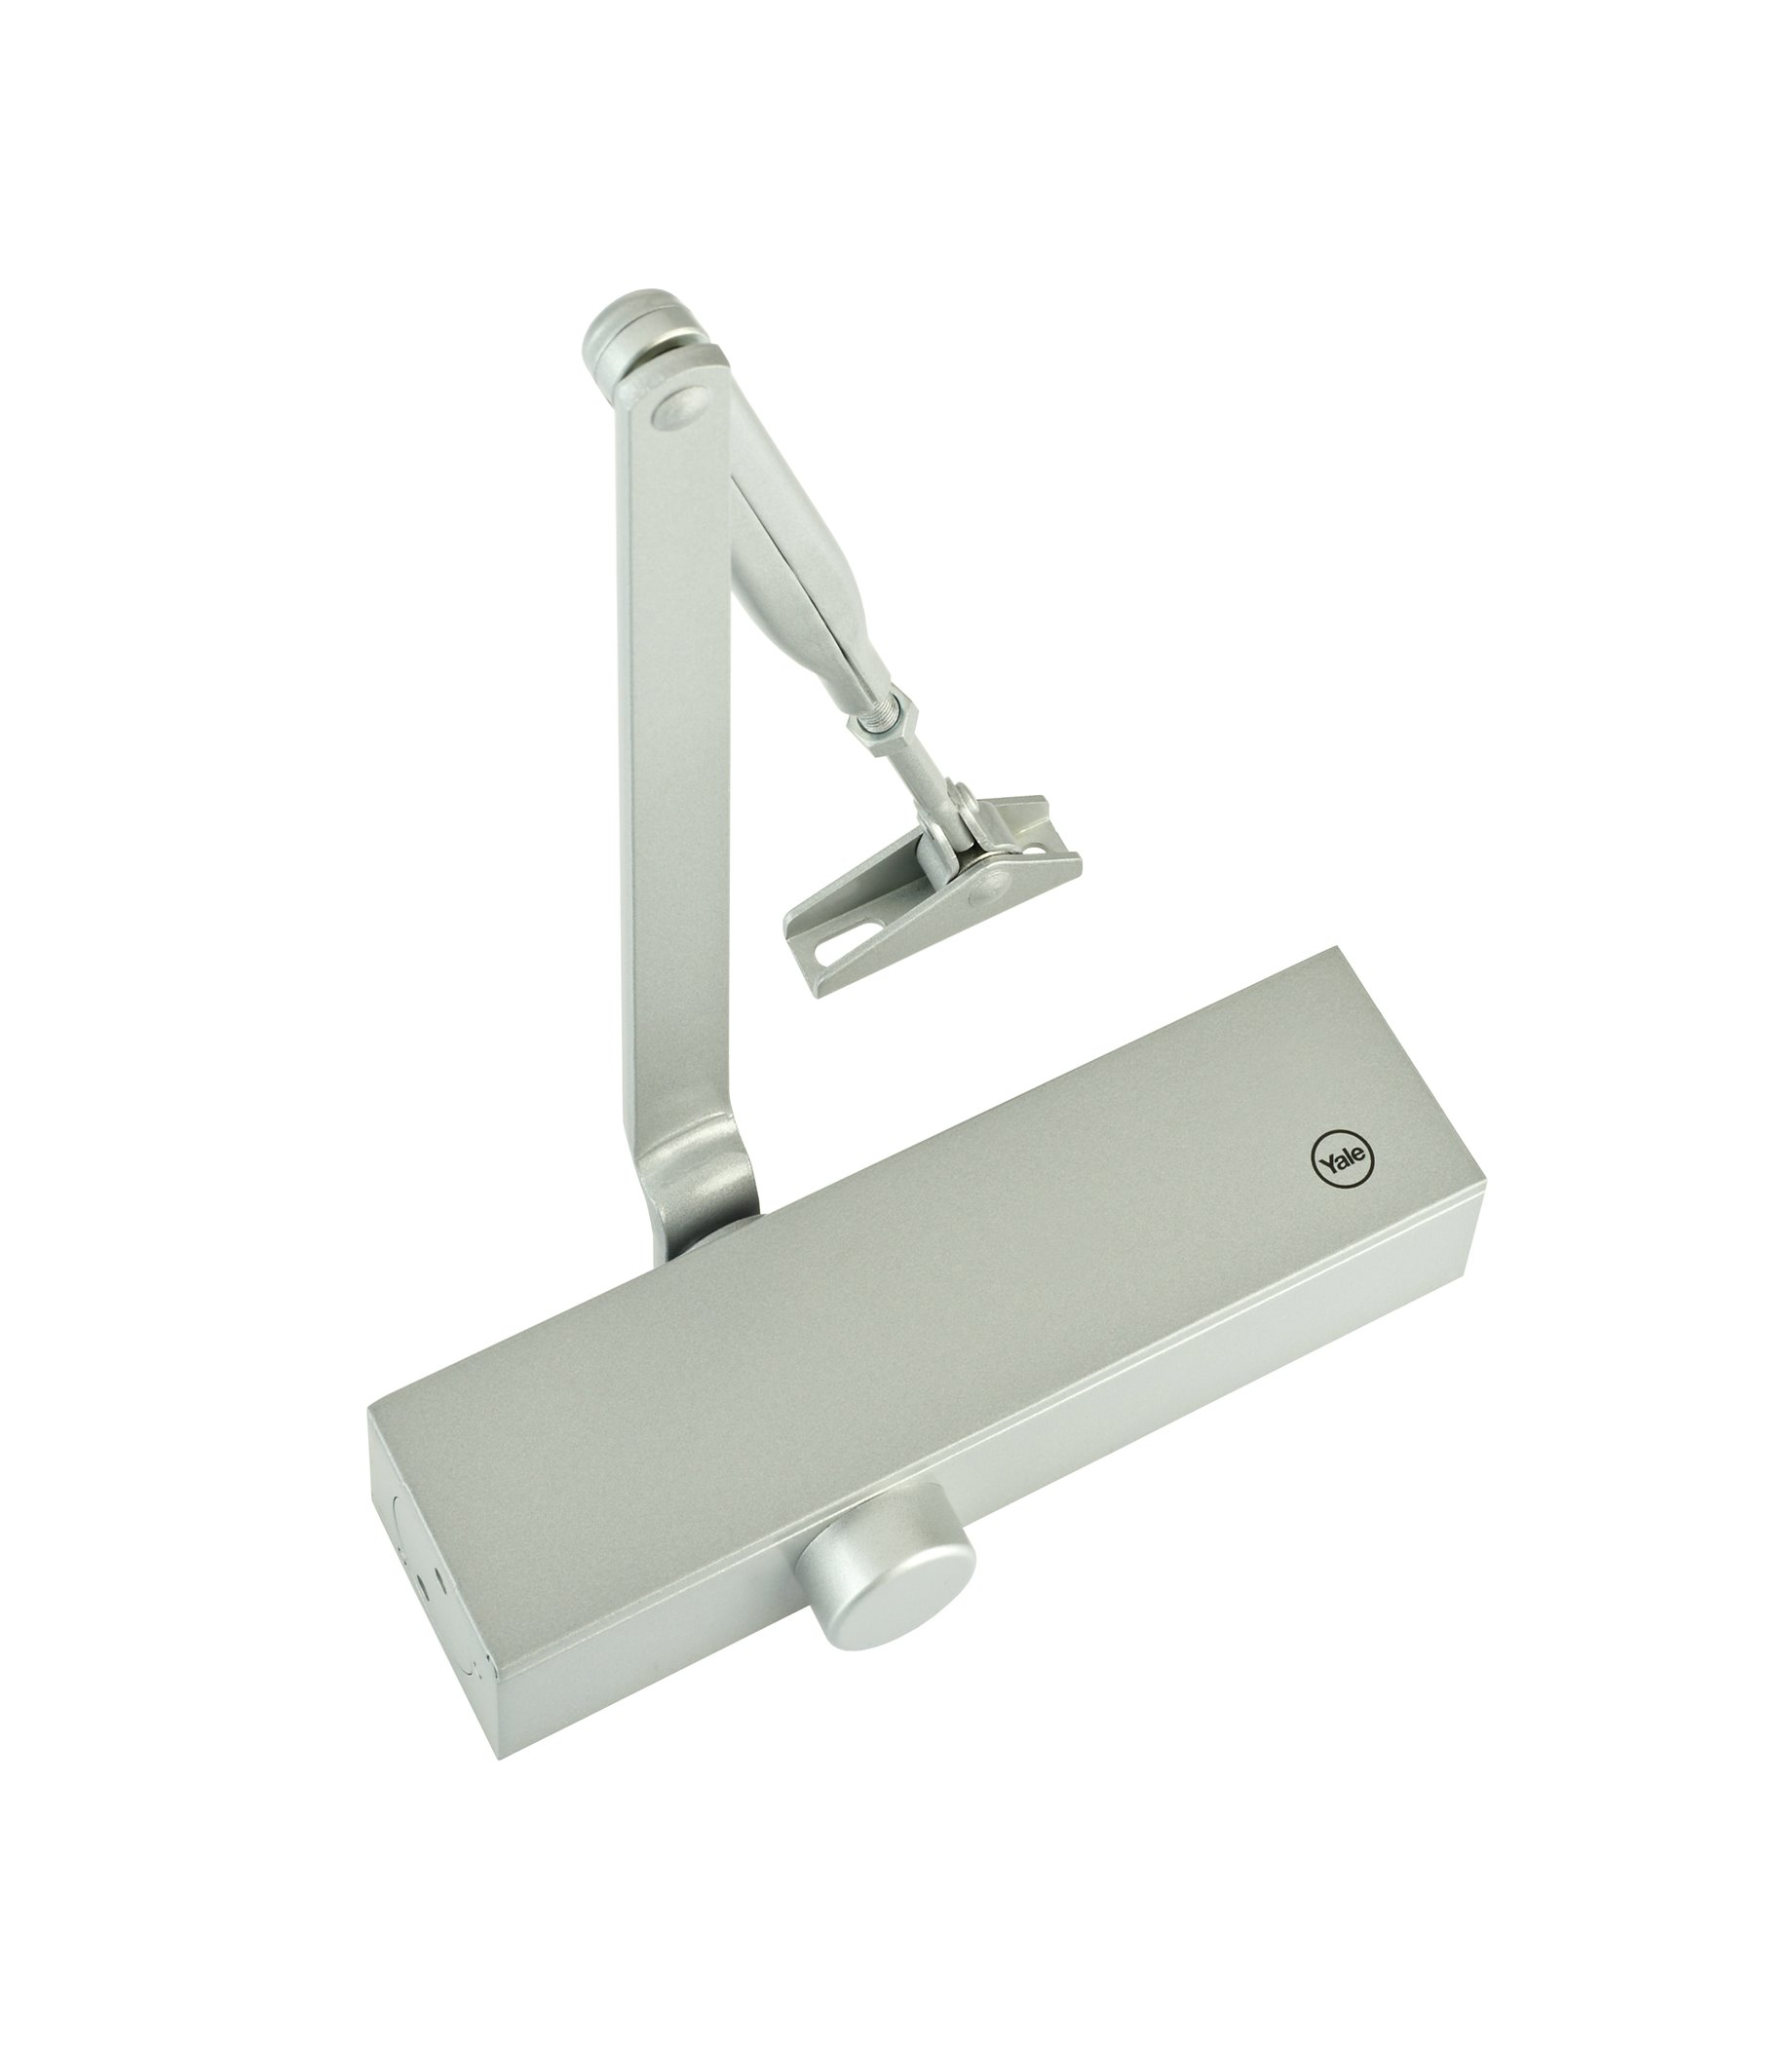 Yale 5000 CE Door Closer - Size 2-4